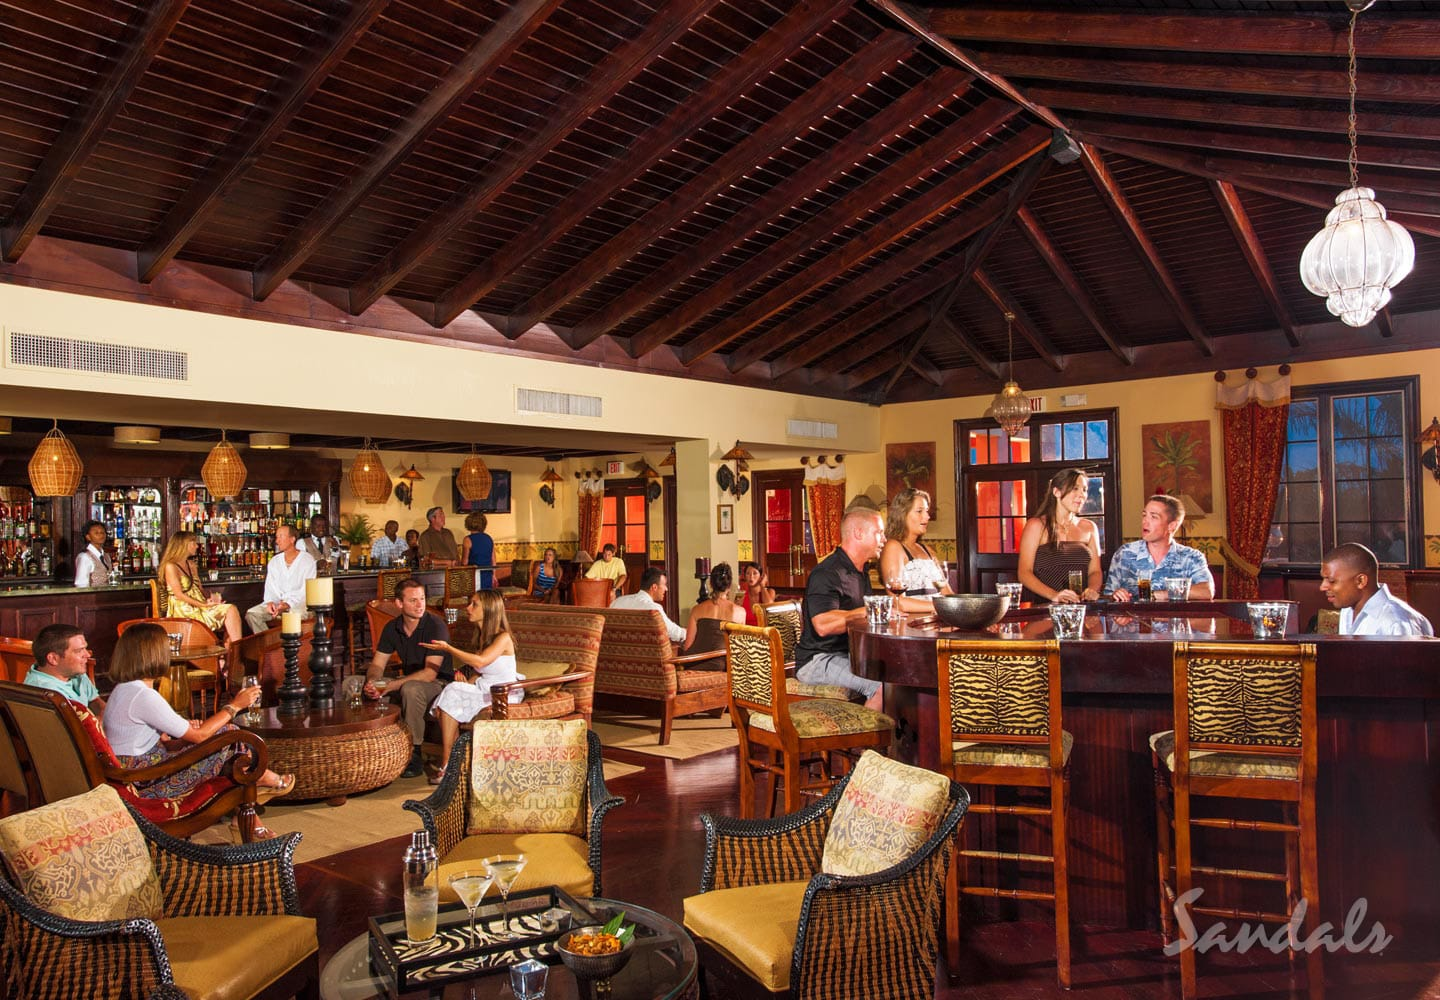 travelers in the martini bar at Sandals Whitehouse Jamaica, all inclusive vacations adults only can be booked